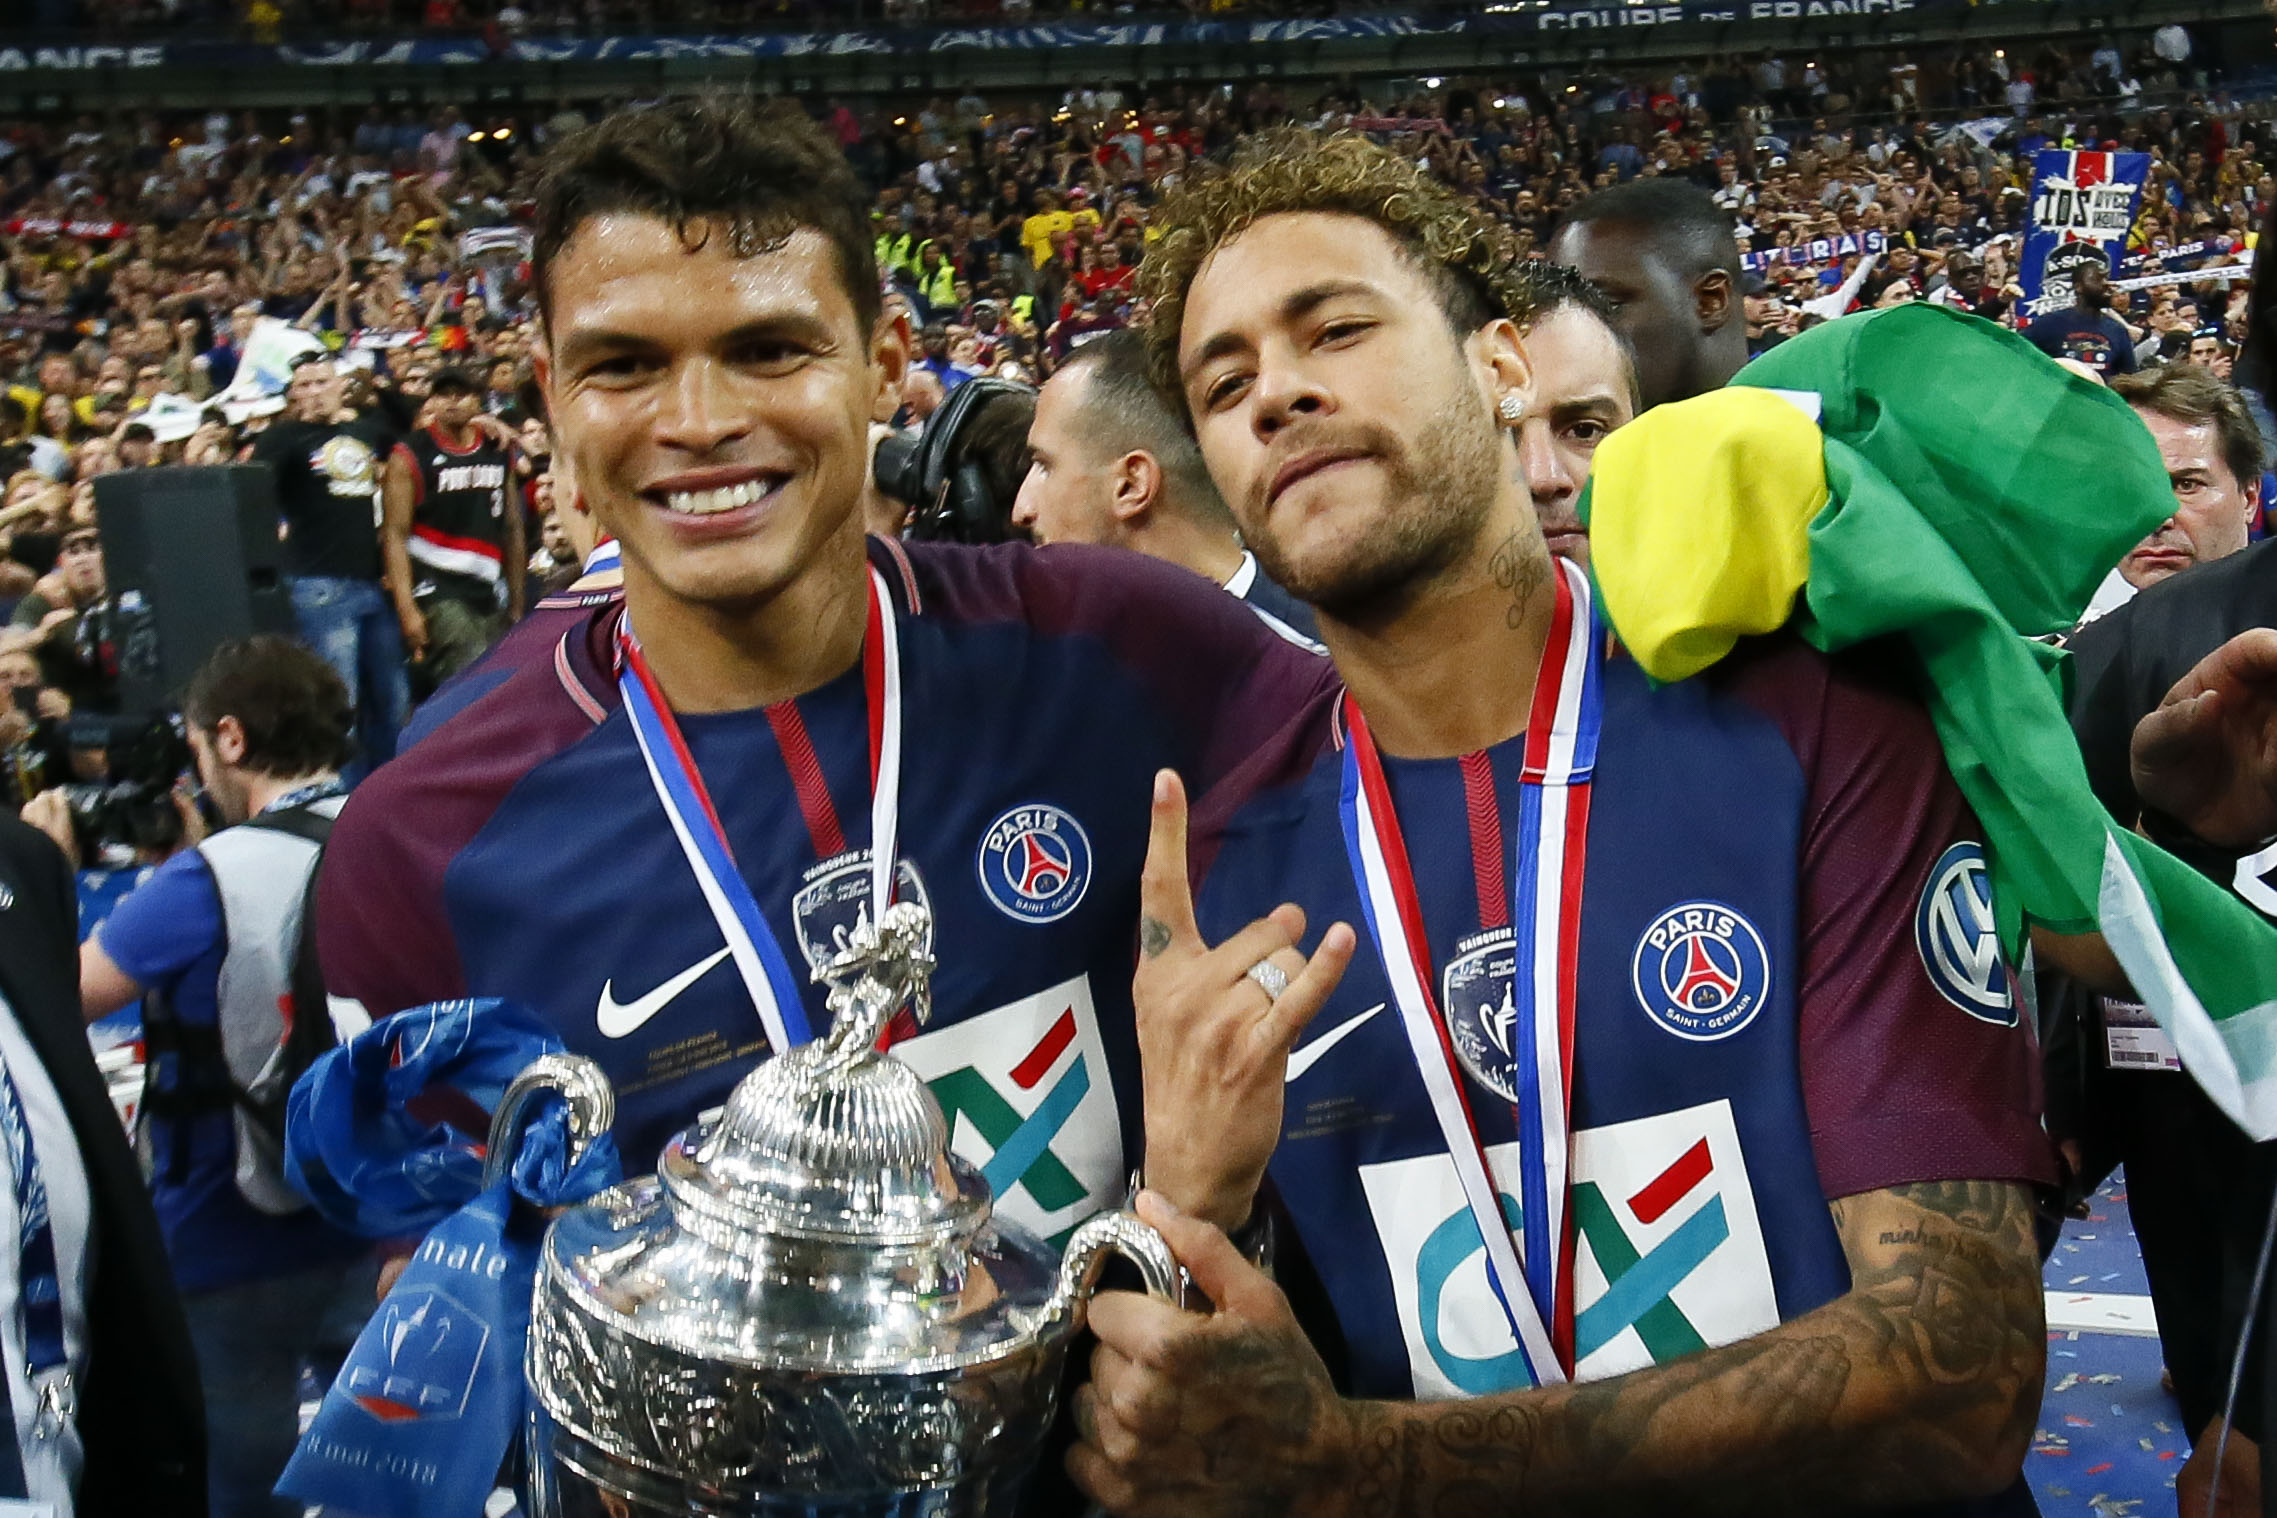 Coupe de france le psg affrontera pontivy en 32es de finale le tirage au sort complet coupe - Coupe de france tirage au sort ...